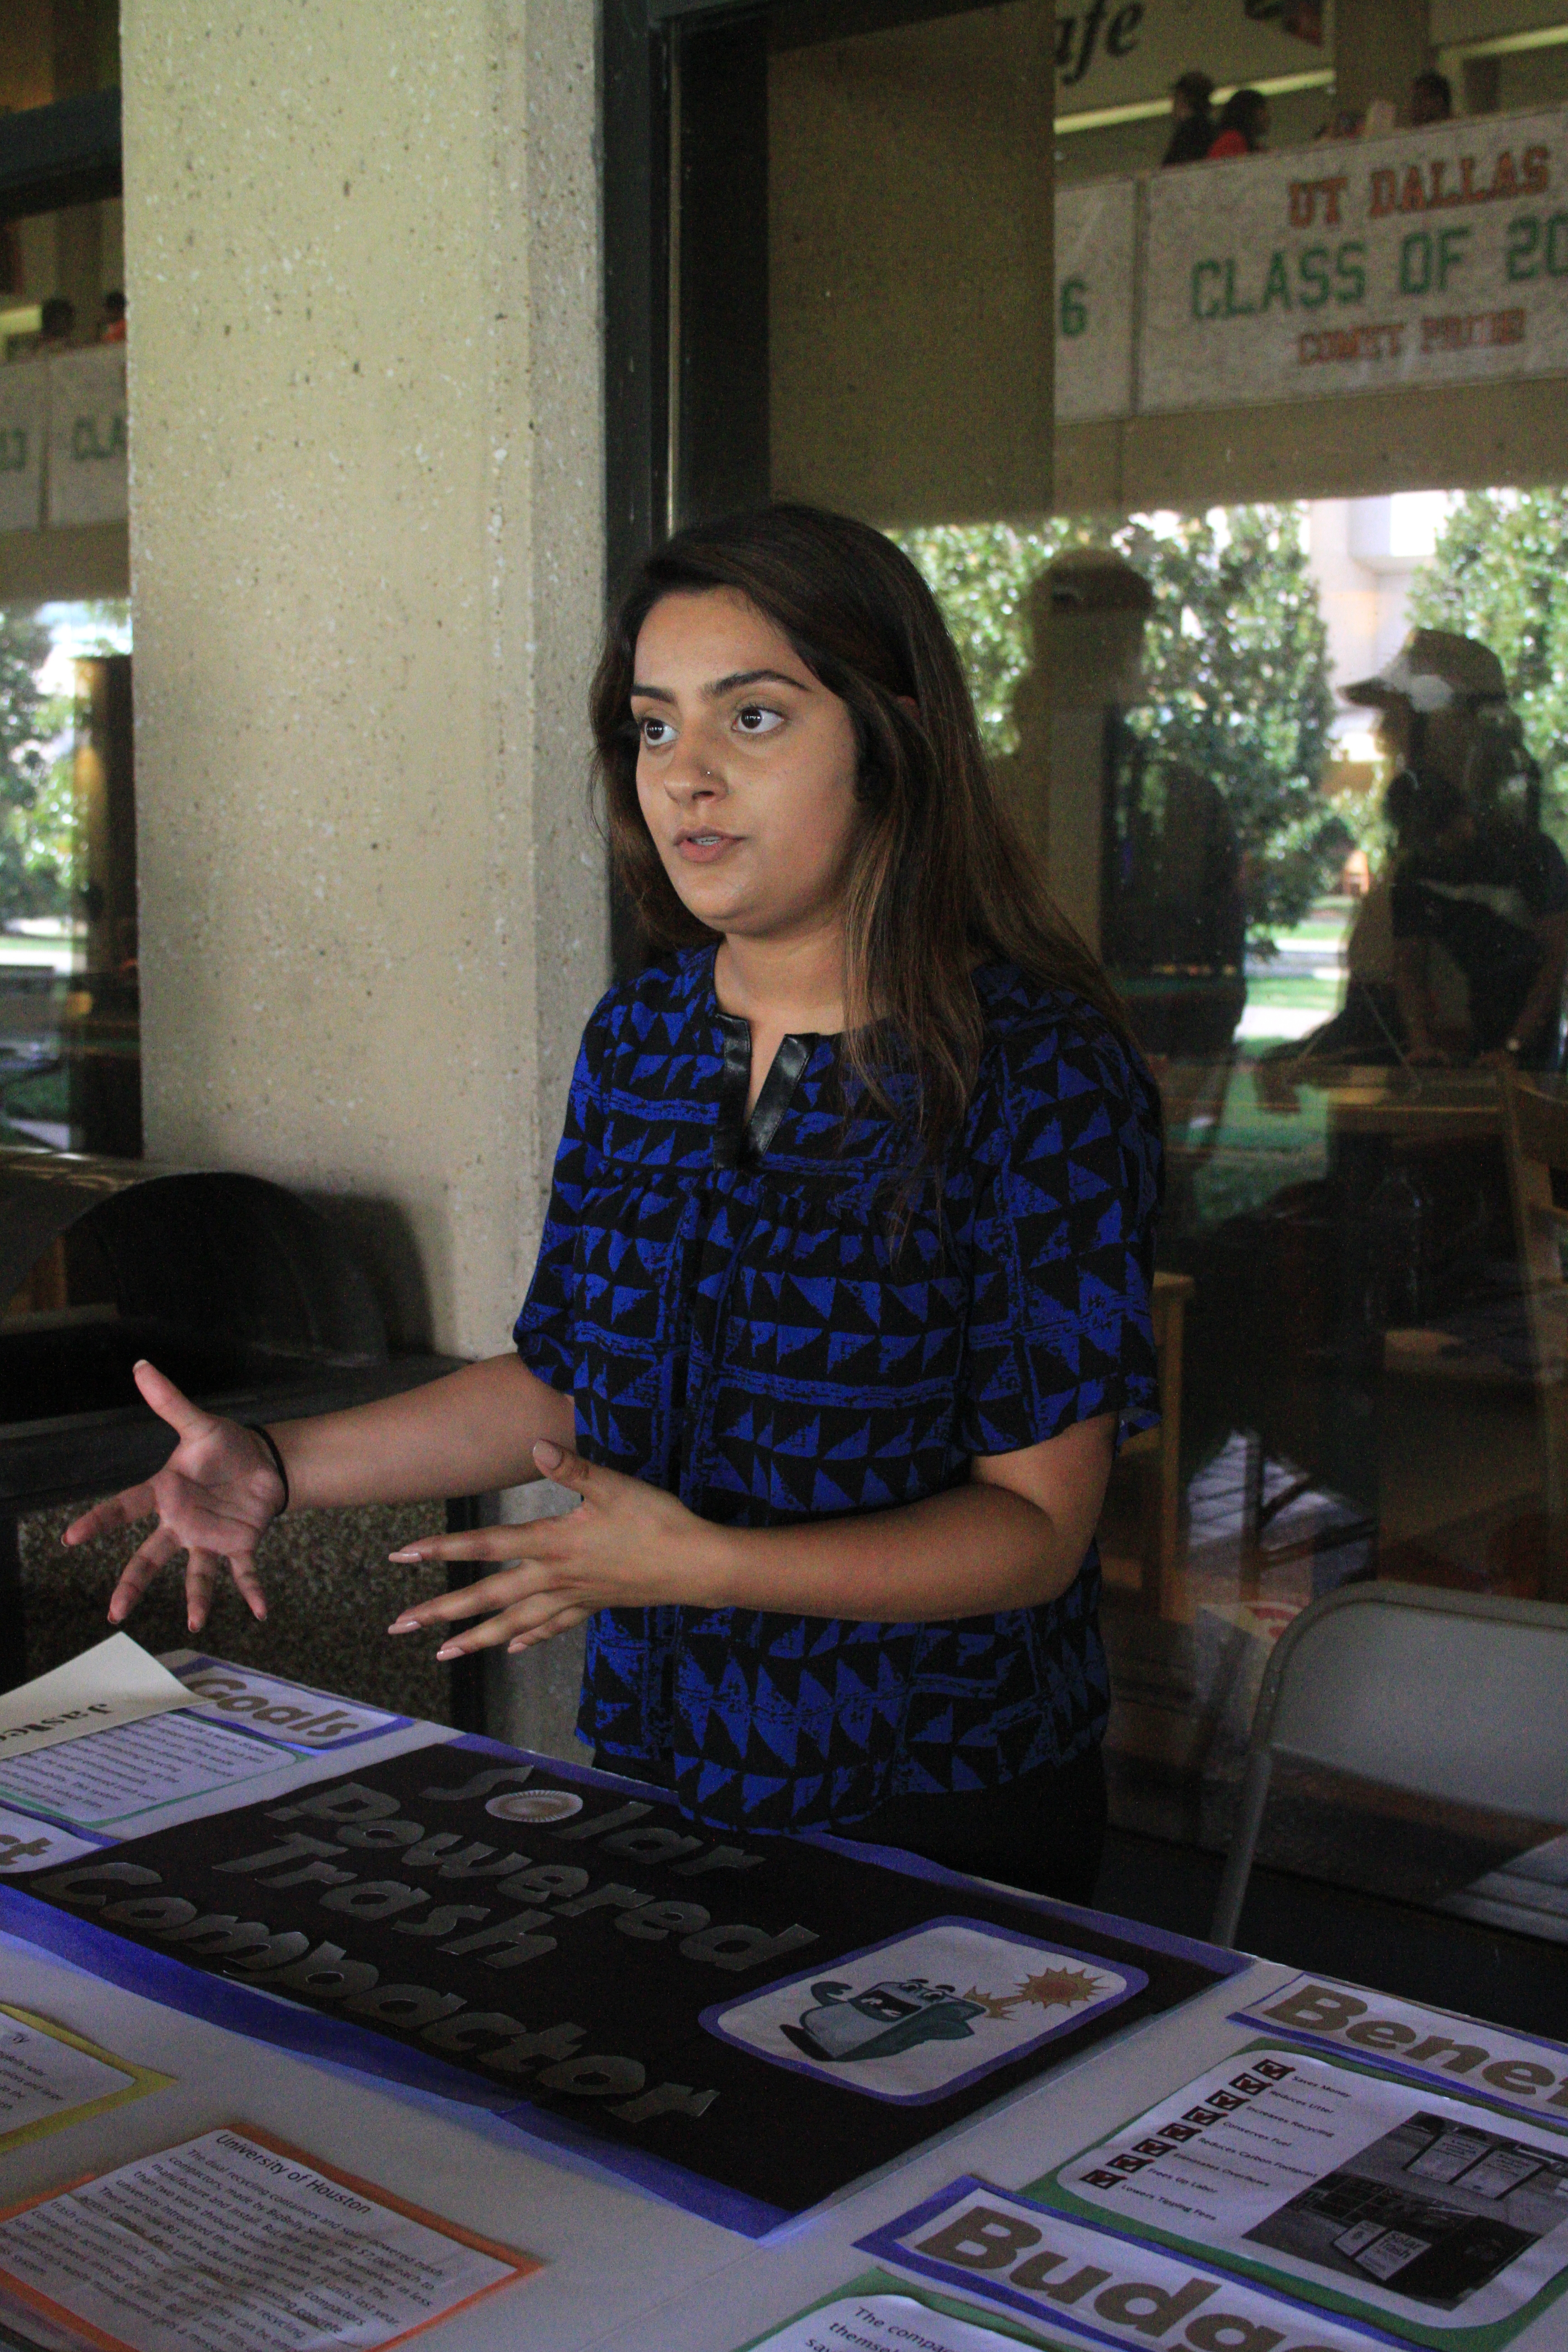 Students, staff propose sustainable ideas for campus at green fair